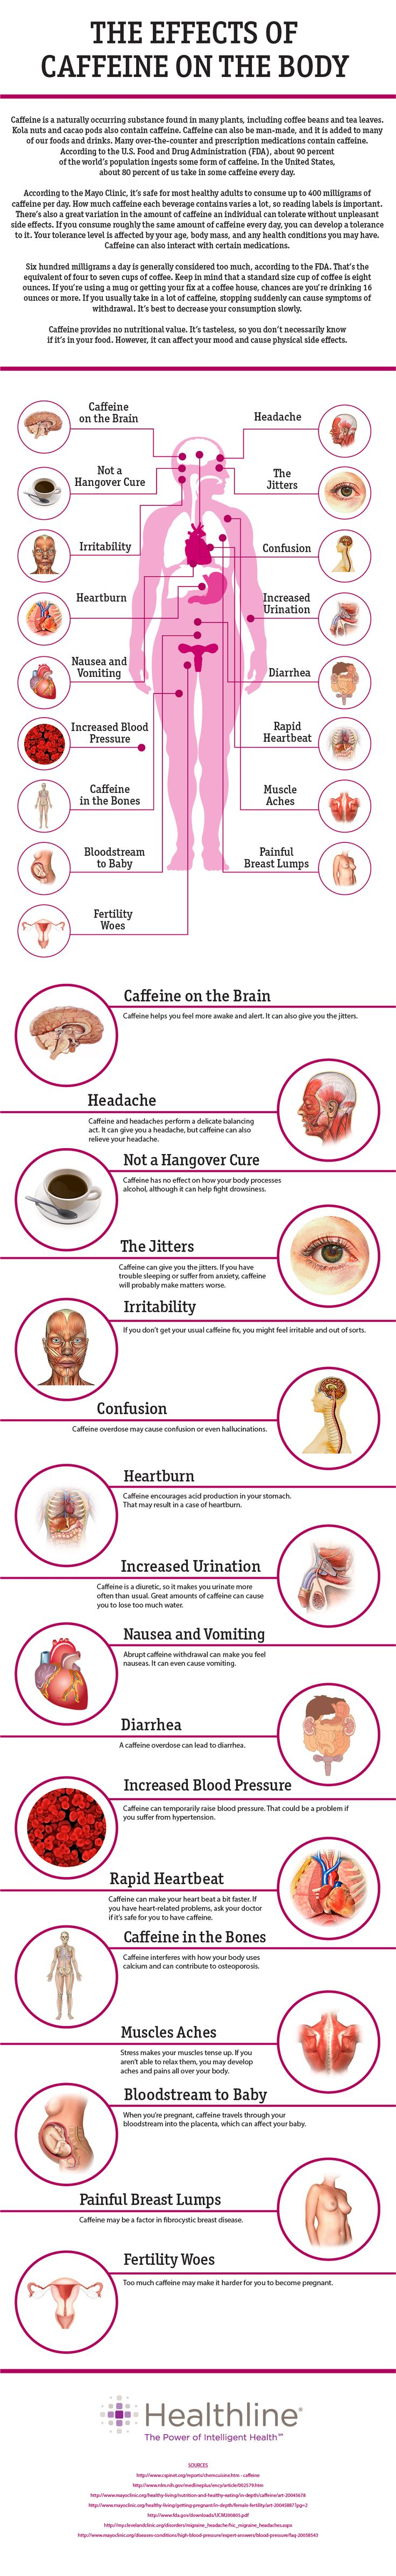 effects uses and benefits of coffee Do you passionately crave for a daily cup of coffee  taking it in the right dose  can have positive effects on your health  another added benefit of caffeine is  that its topical use can tighten fine lines and smooth puffy skin.